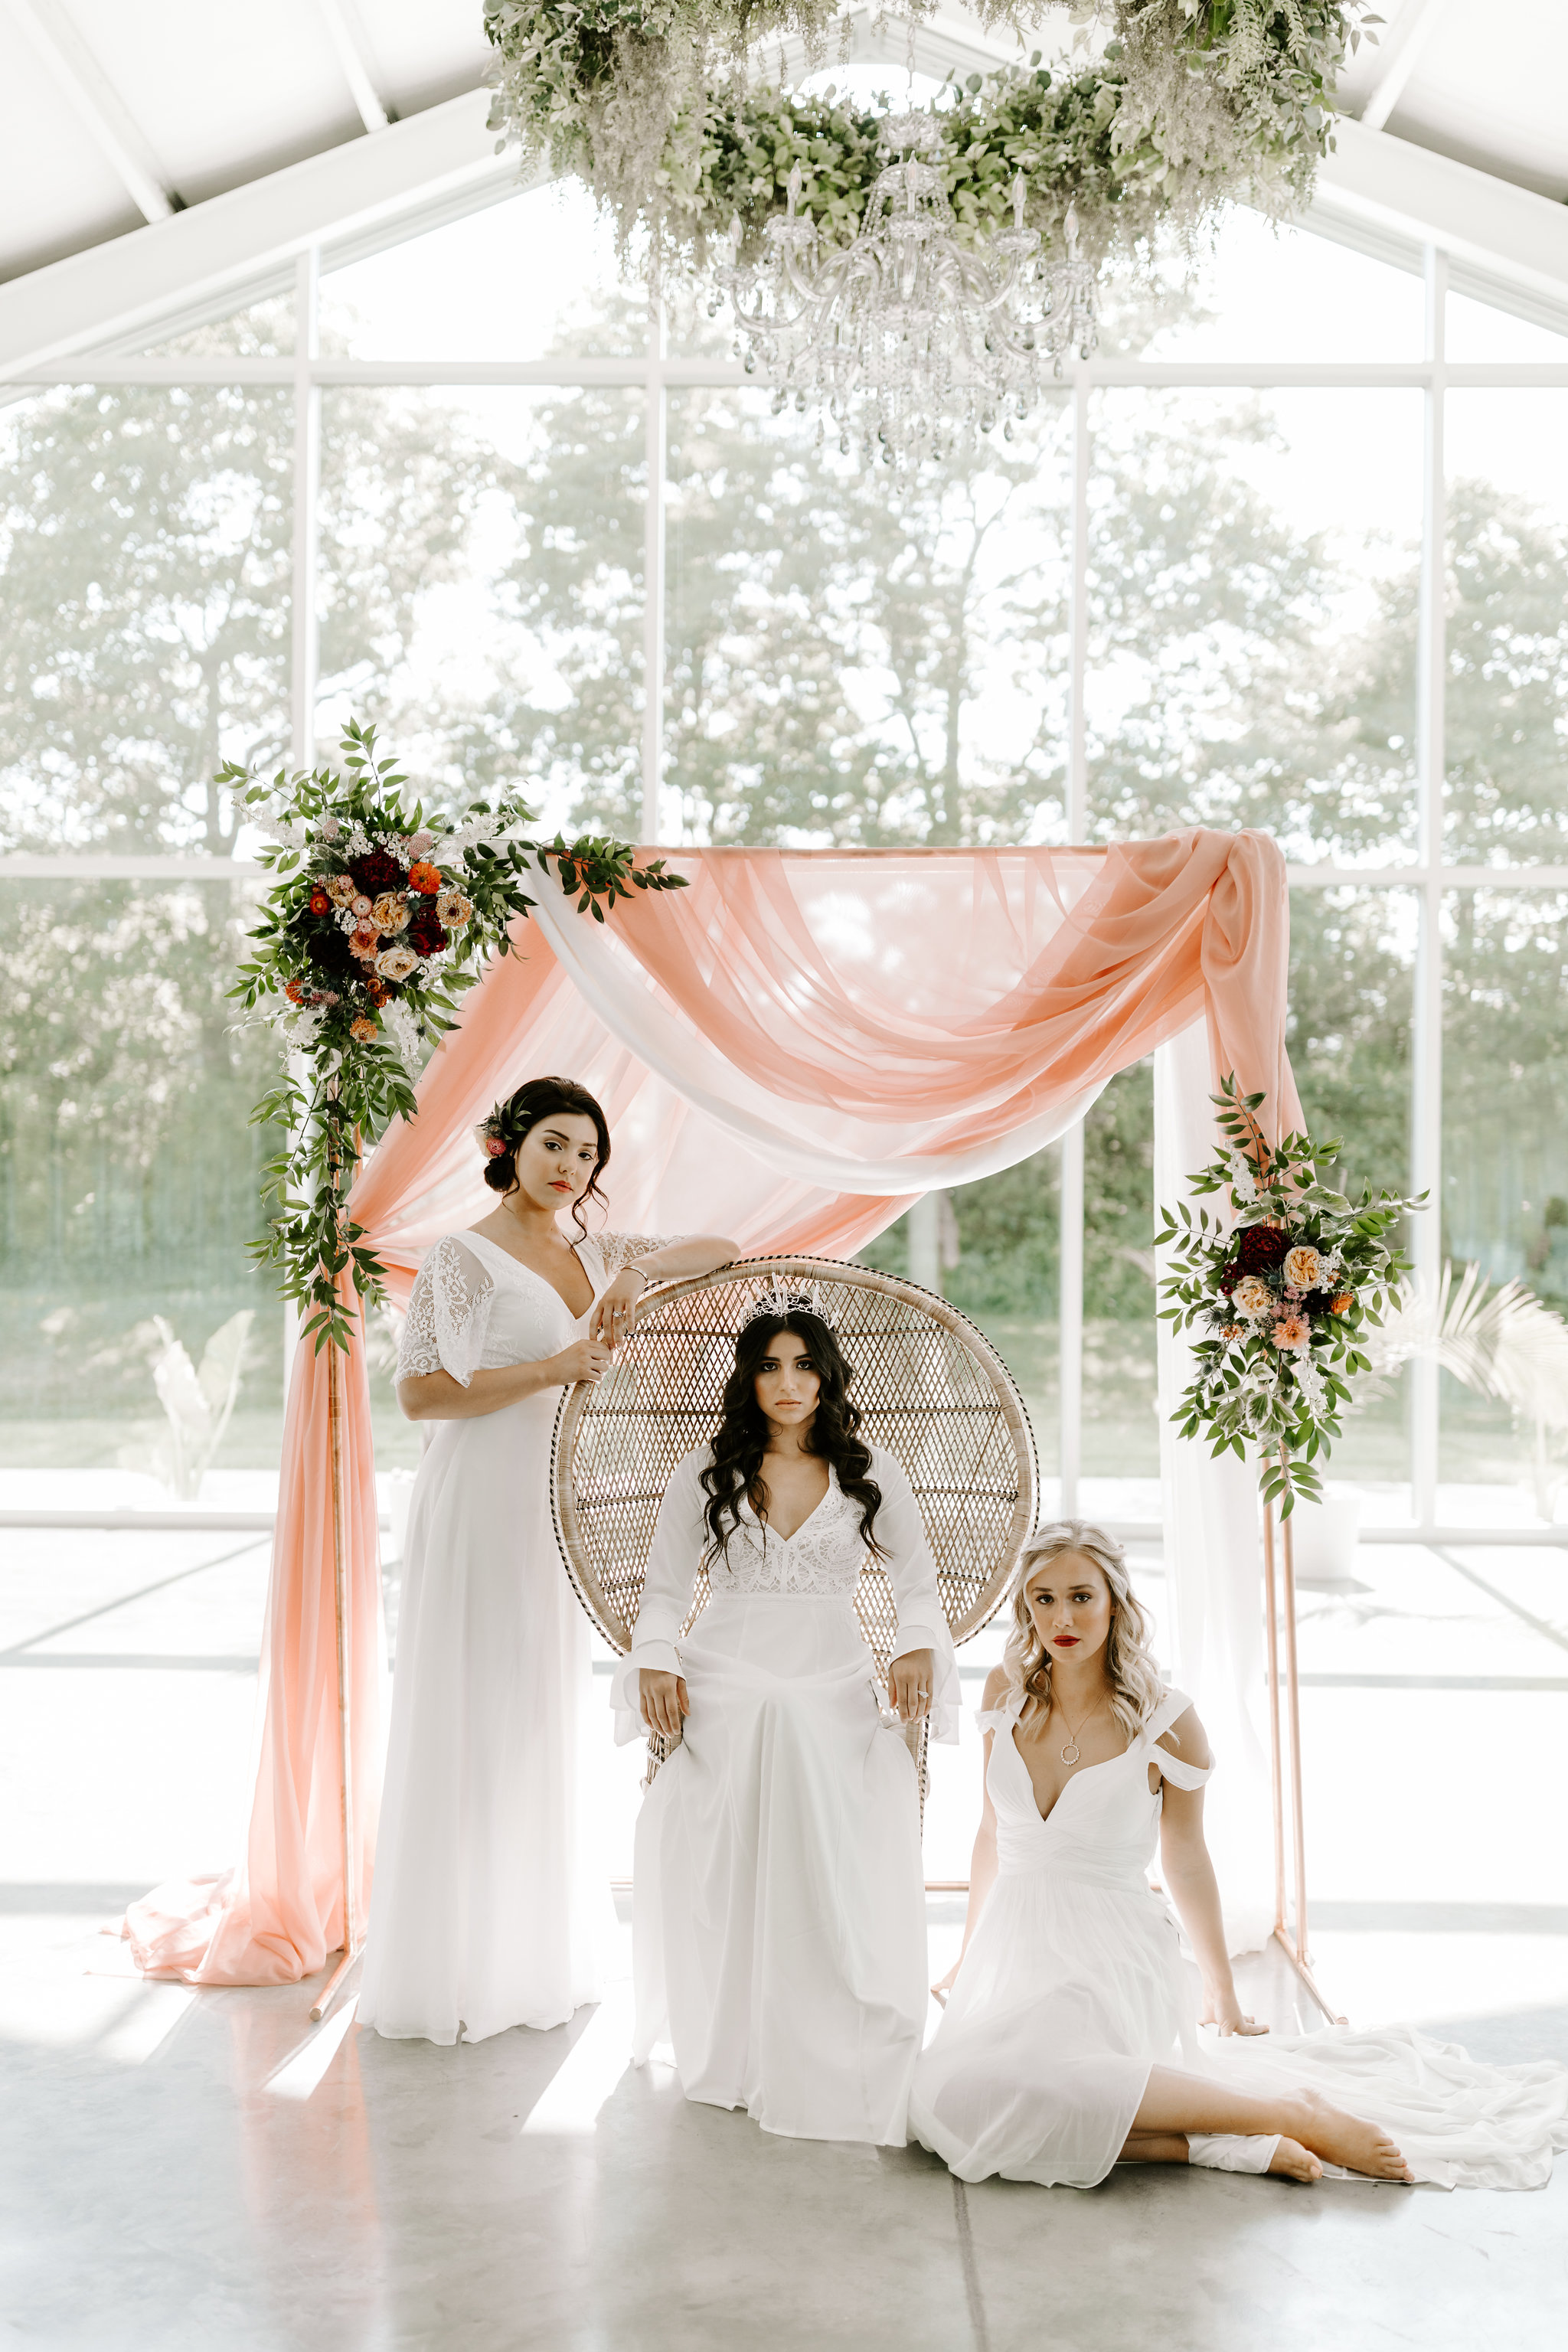 Heaven Meets Earth Wedding Inspiration | Designed by Unions With Celia | Sarah Jane Photography | Greenhouse Two Rivers Venue | Inspired by both the organic beauty of the earth and the heavens, we wanted to combine the celestial with the natural for this Heaven Meets Earth inspiration shoot.